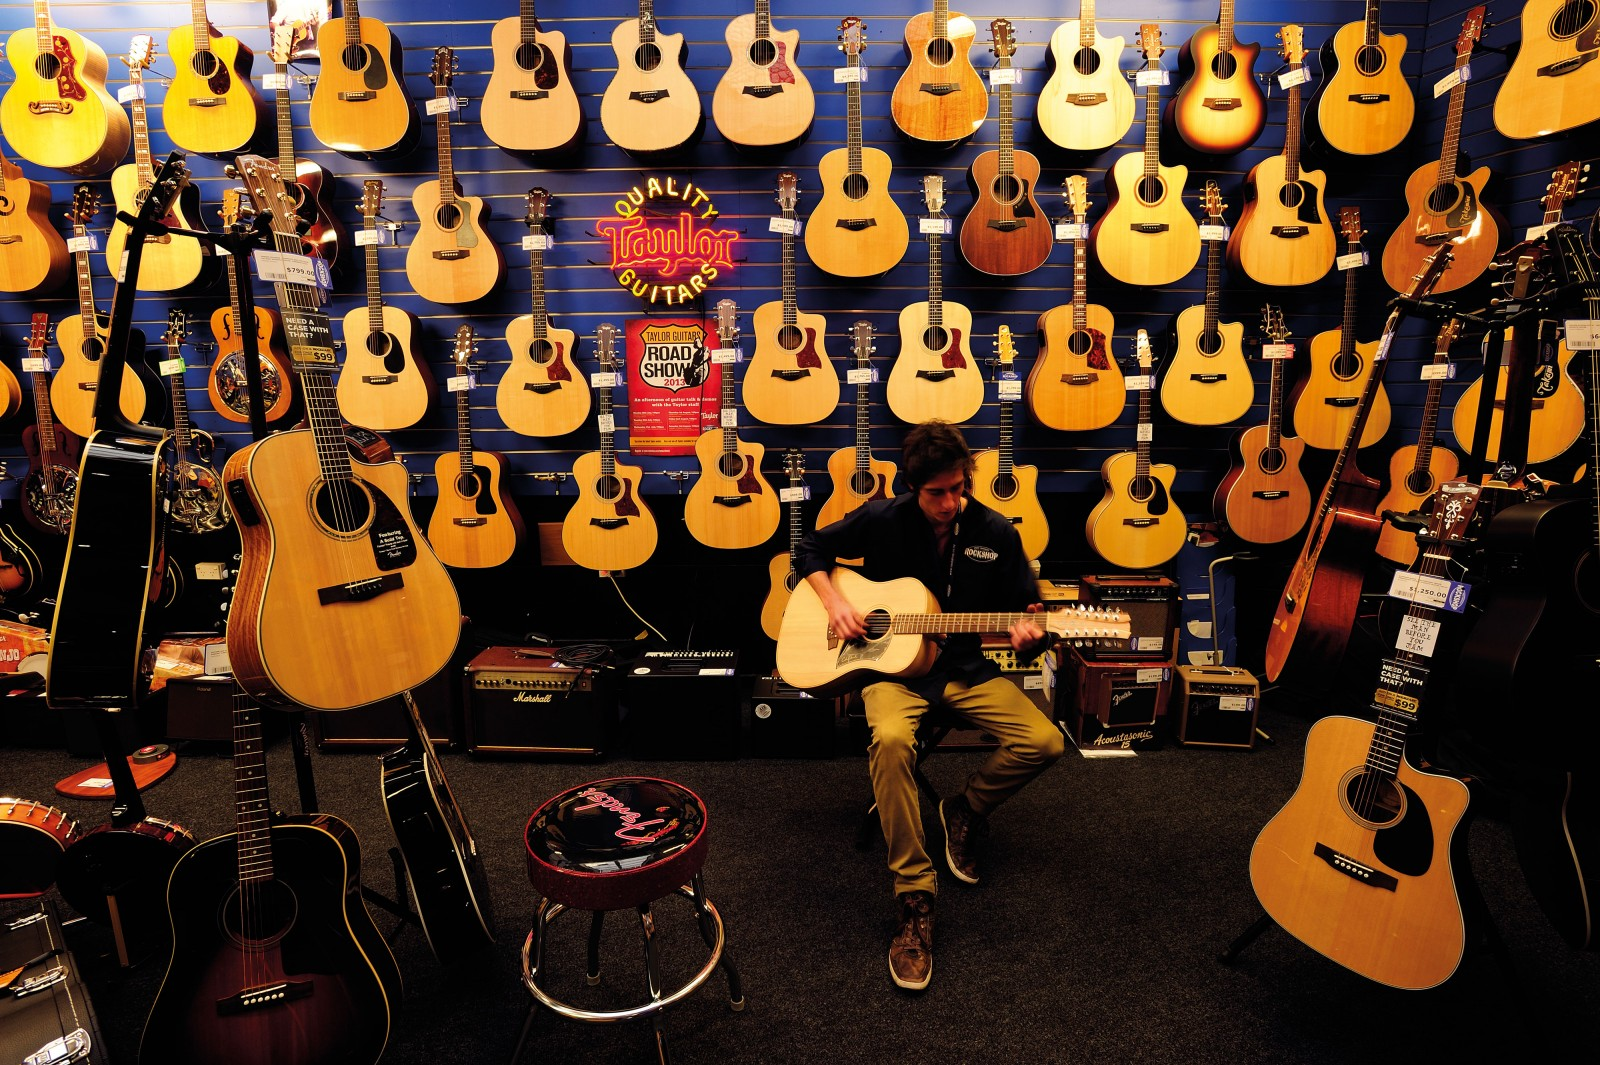 """It's the best job in the world,"" says Jasper Hamlet, tuning a Cole Clark guitar in the guitar room at the Rock Shop. The musical chain store began business in 1986 when English immigrant Mick Webb and his business partner Paul Skipper took over a rundown store on Karangahape Road. Today the Rockshop has 22 stores nationwide employing around 200 staff."